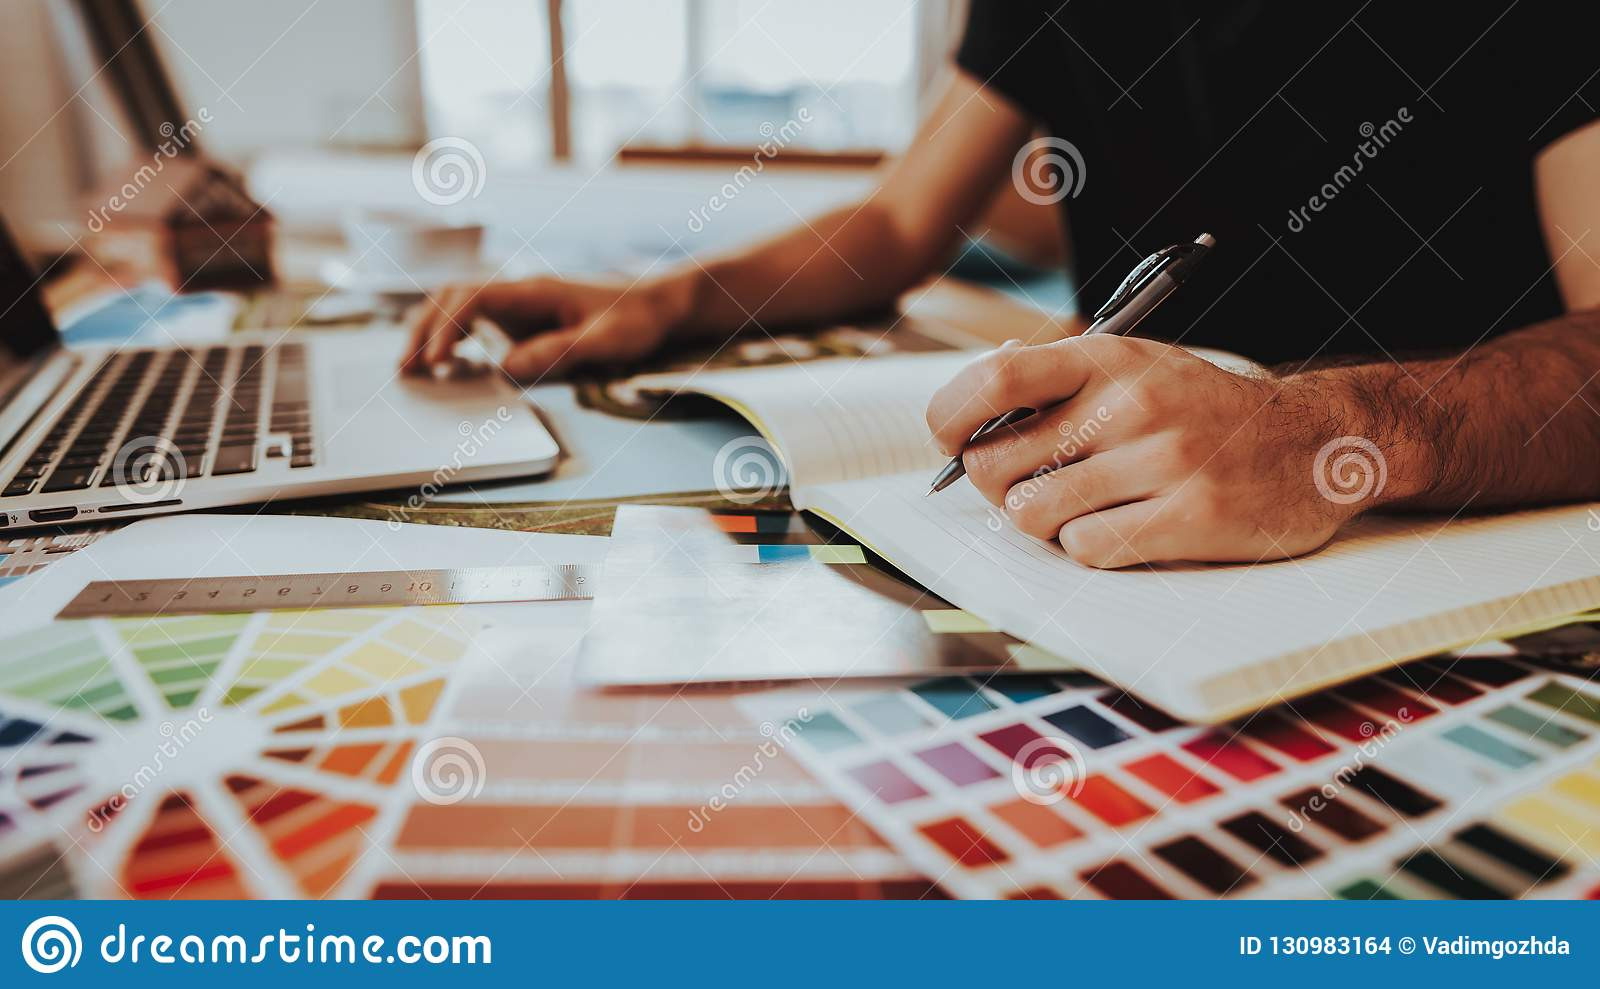 Side View of Graphic Designer Working on Project